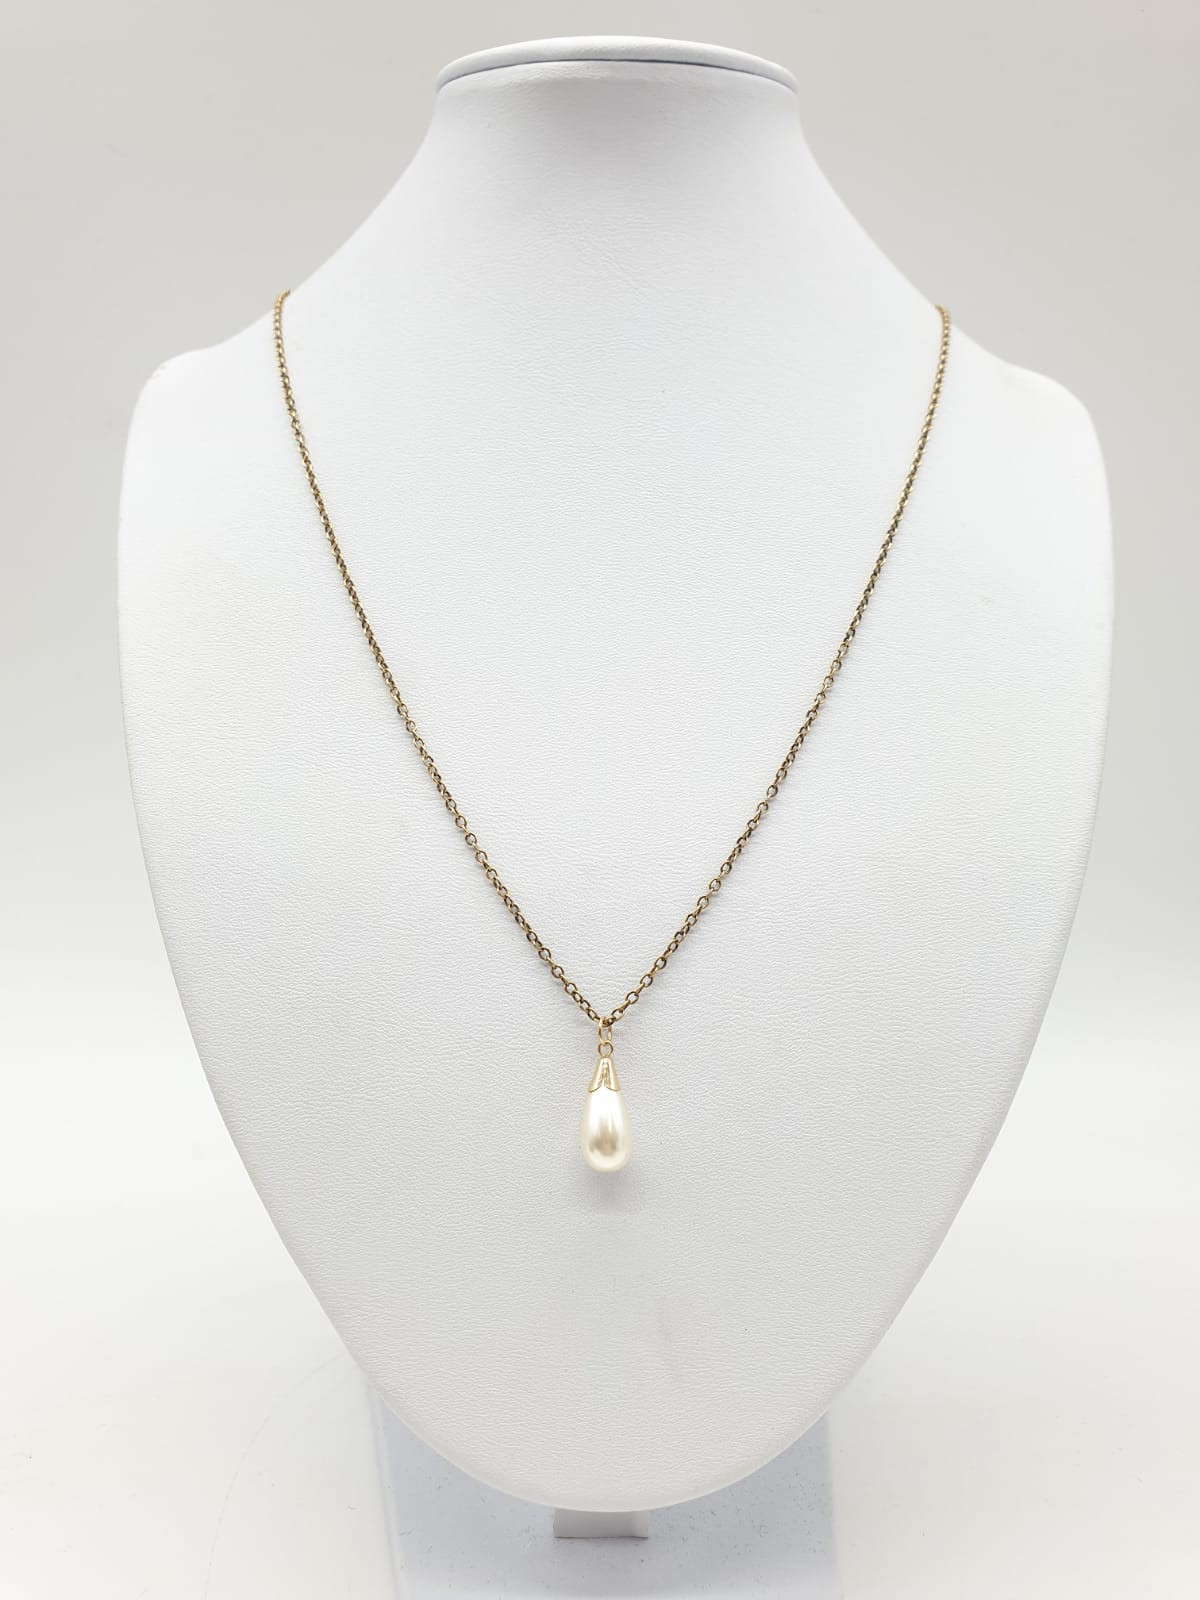 Pearl pendant on a 50cm 9ct gold chain. Weight 3g. - Image 3 of 3